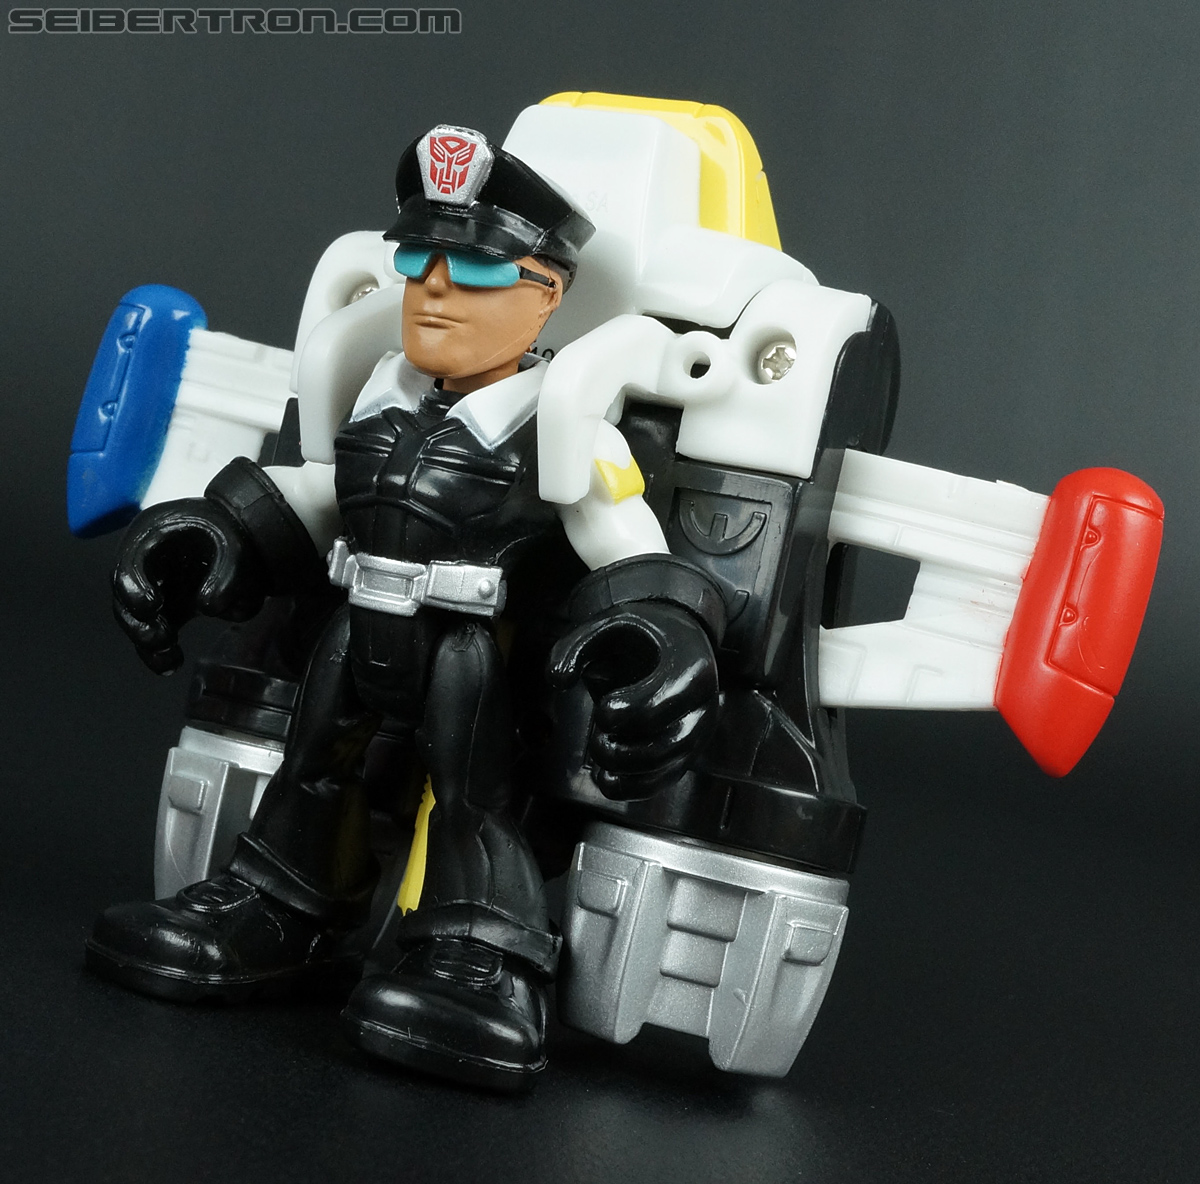 Transformers Rescue Bots Jack Tracker & Jet Pack (Billy Blastoff & Jet Pack) (Image #27 of 75)